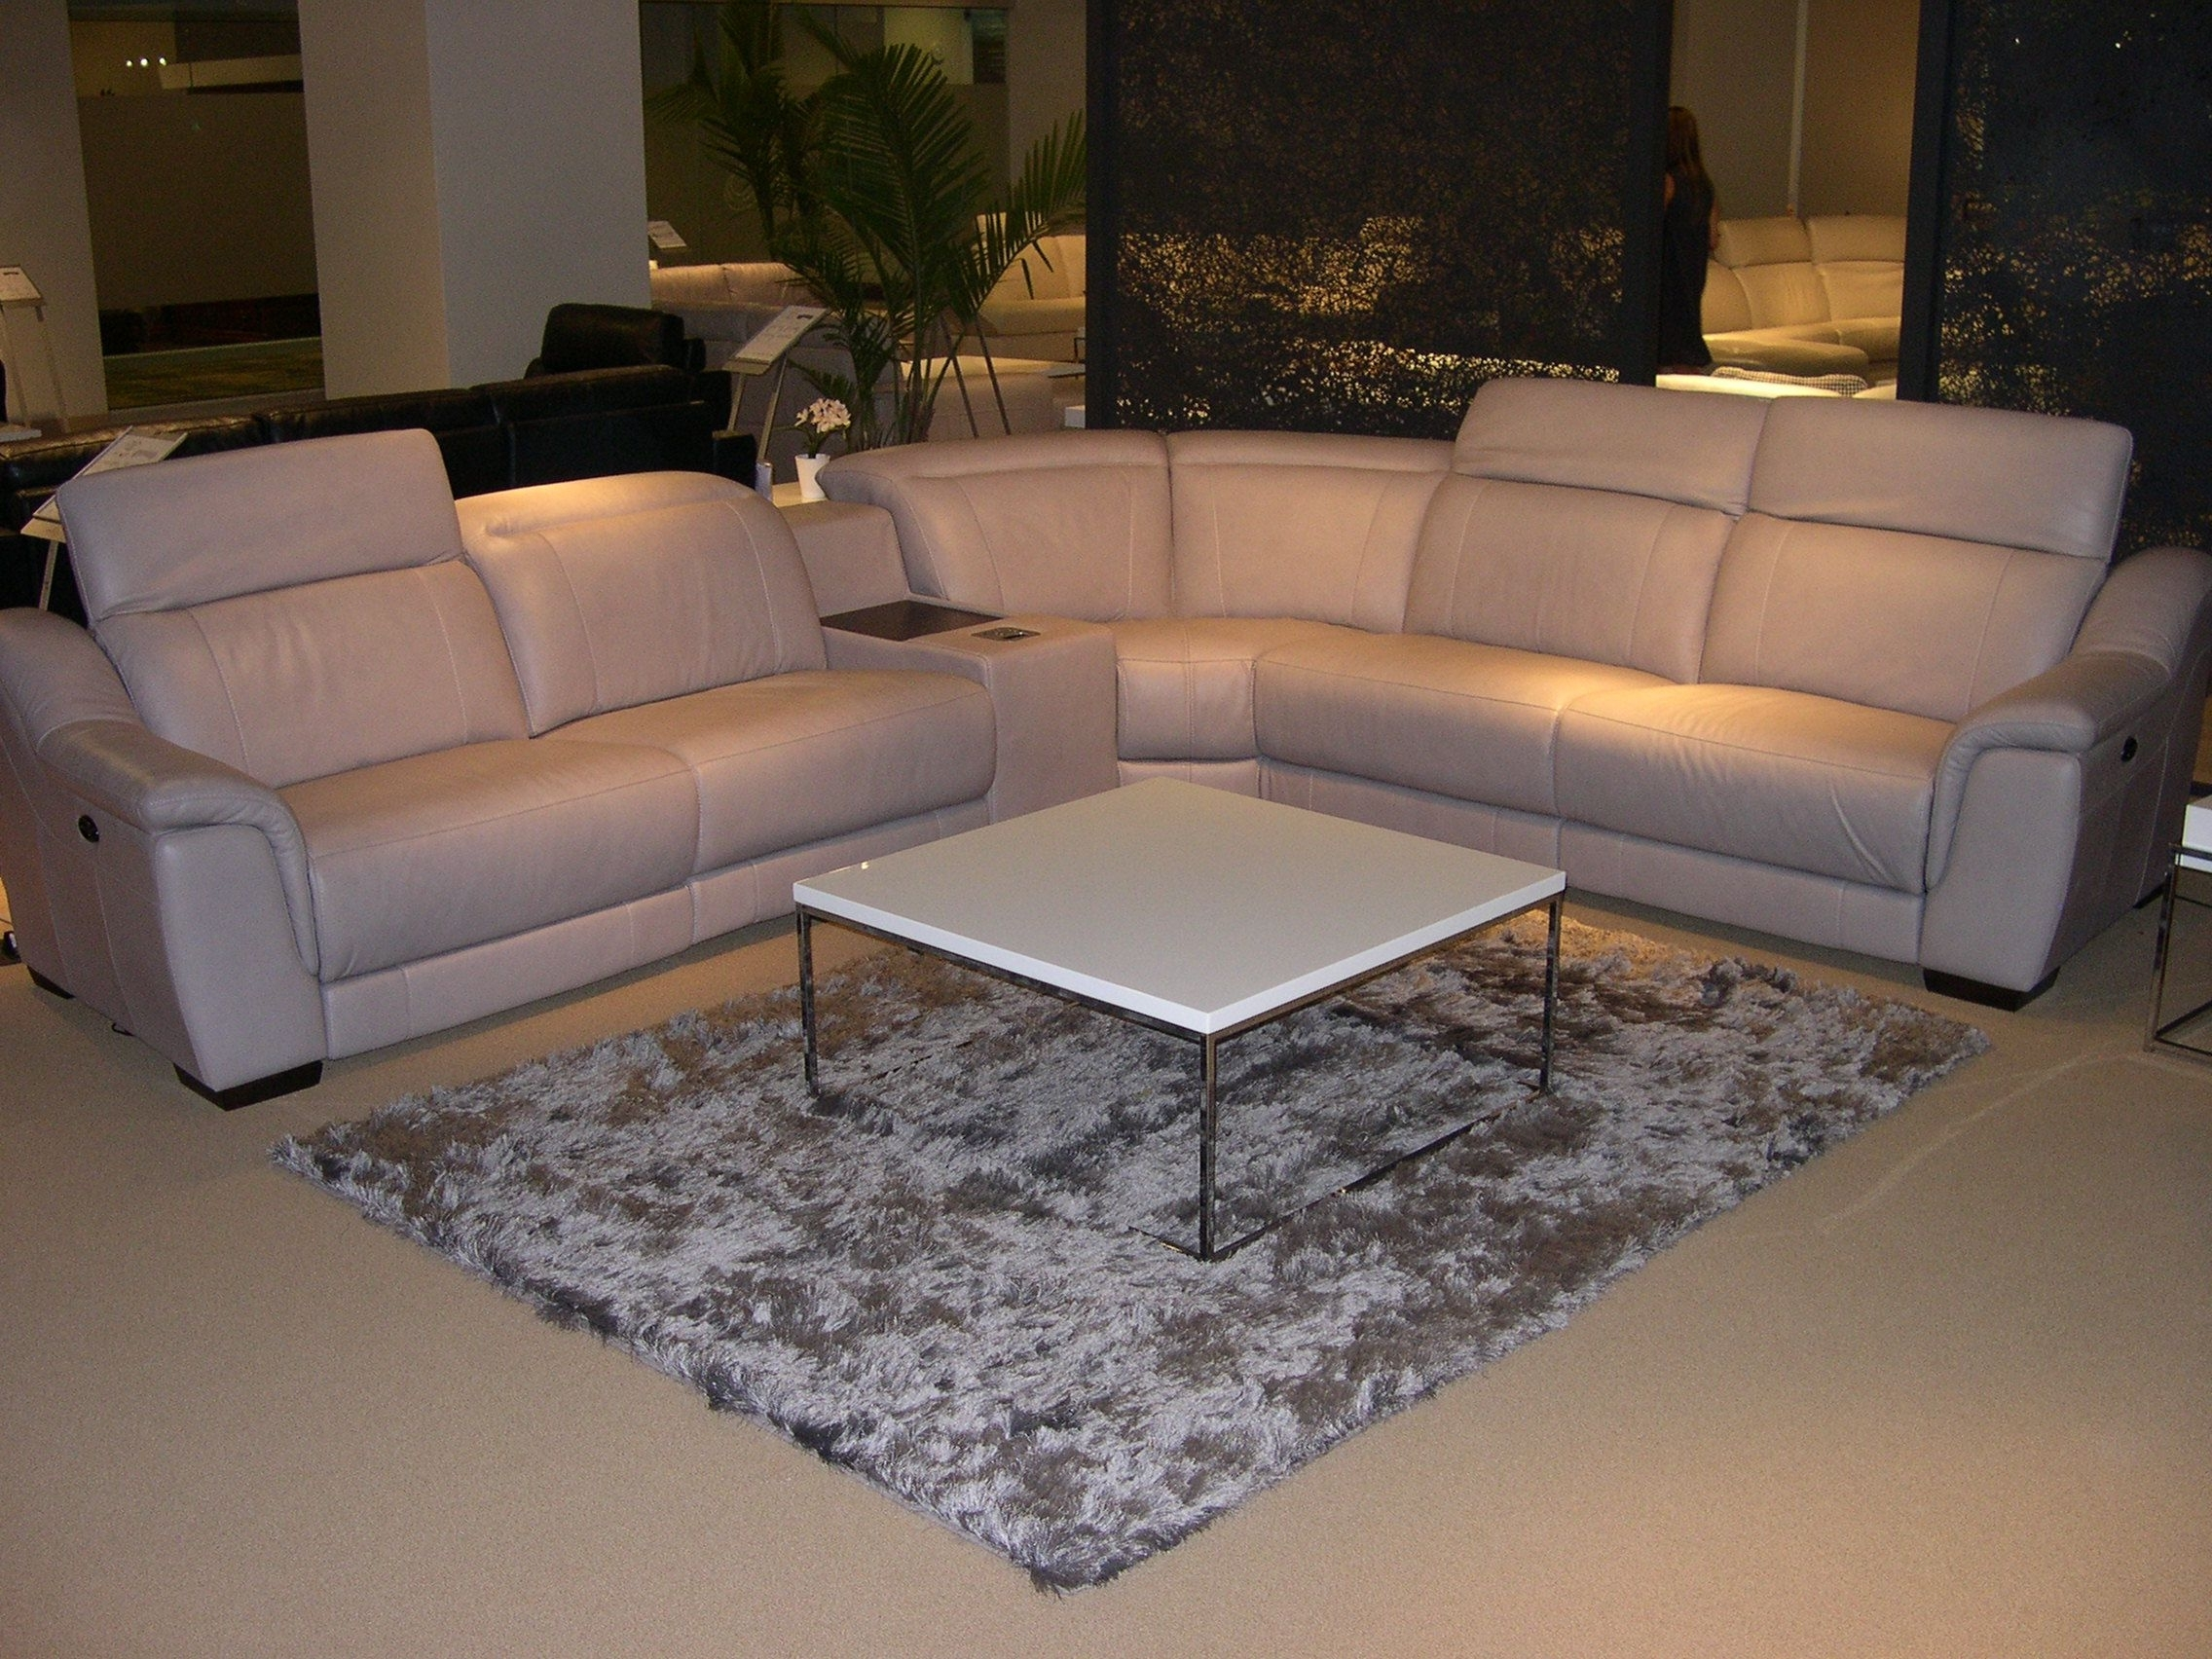 Well Known Las Vegas Sectional Sofas In Htl Leather Sectional – Adjustable Headrests (View 14 of 15)